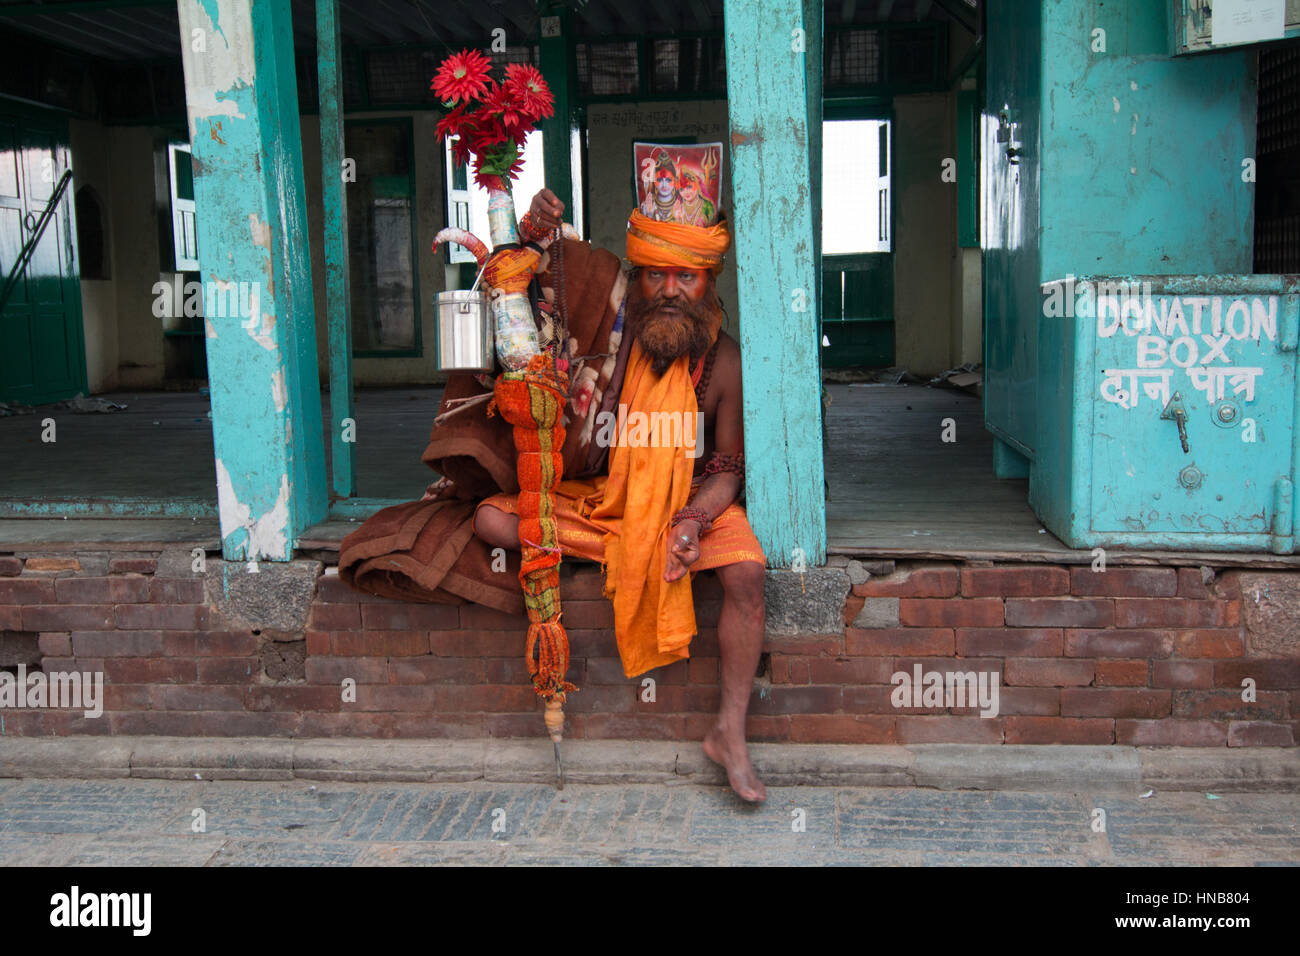 Sadhu in saffron robes at the Swayambhunath pagoda, Kathmandu, Nepal who claims to be from the holy city of Varanasi - Stock Image